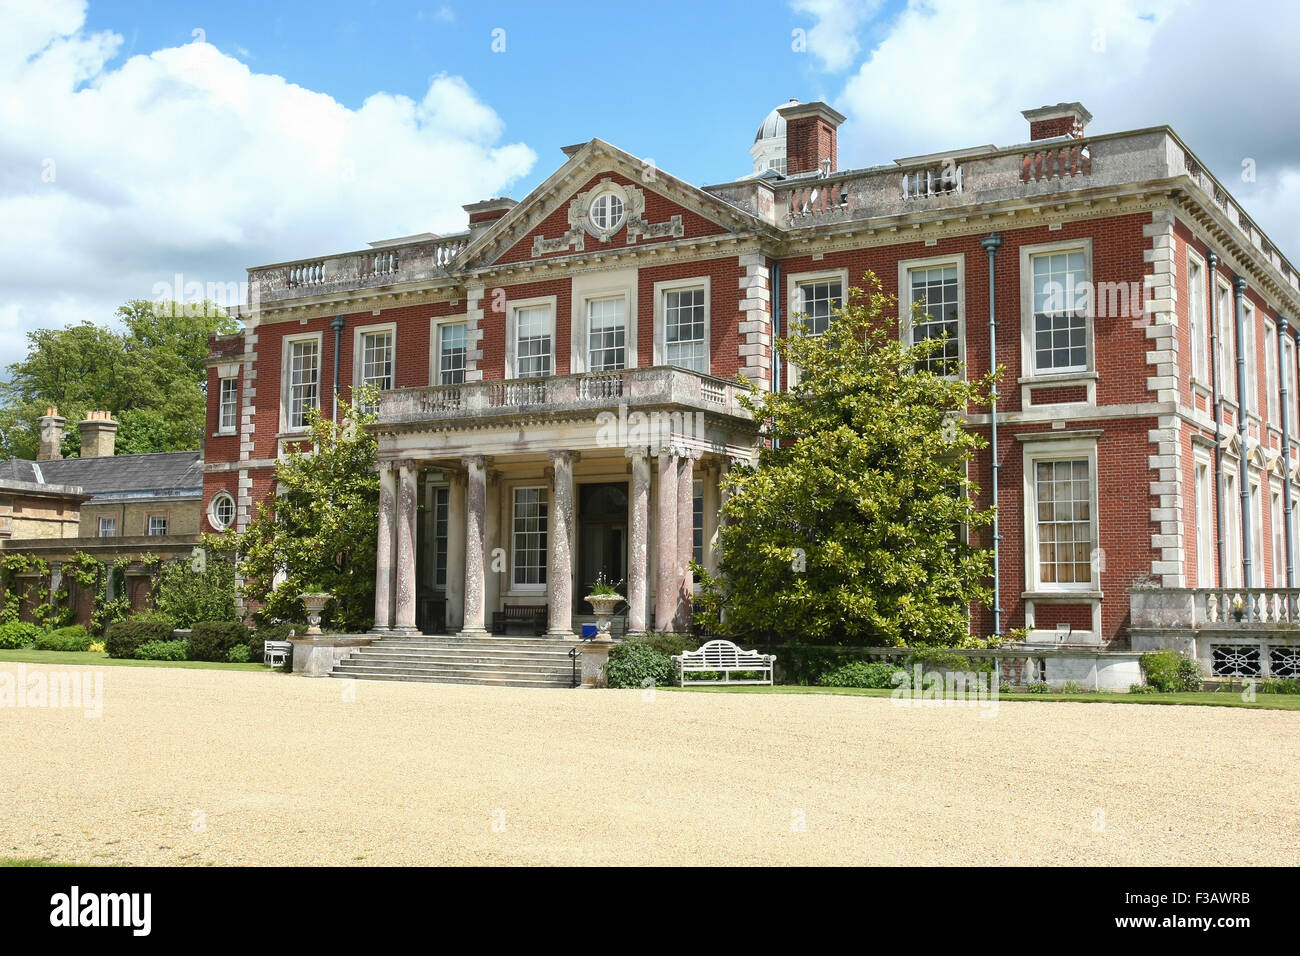 Stansted House A Beautiful Country House Stately Home Set In Sussex Stock Photo Royalty Free